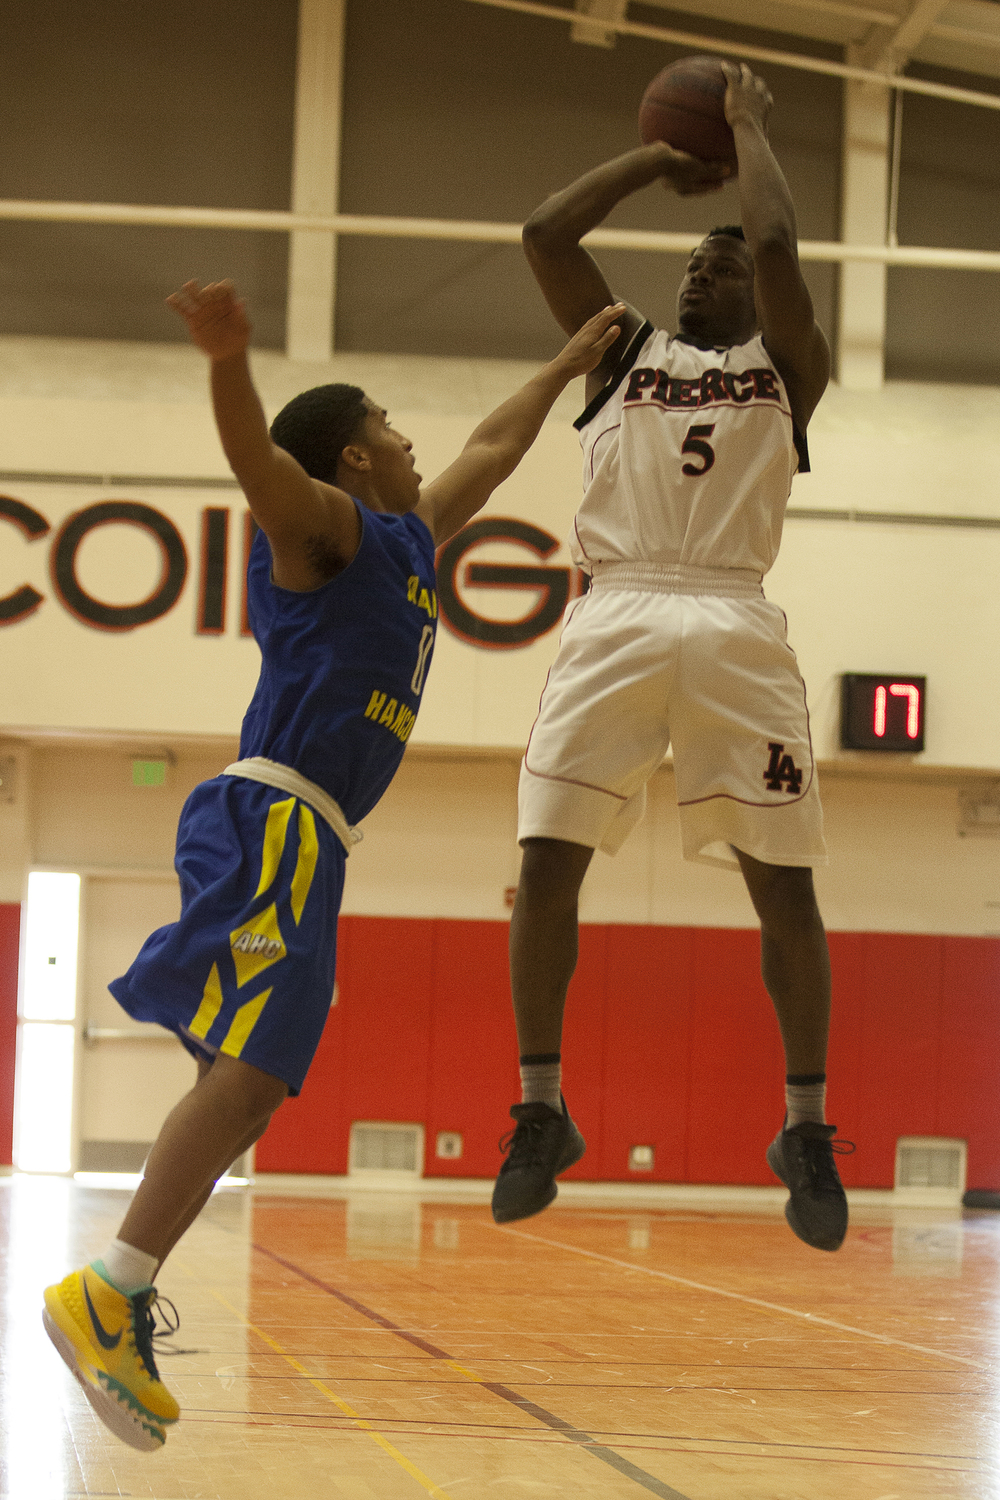 Hancock guard Shane Carney tries to block a jump shot by Montel Shirley in a game on Saturday, Feb. 13, 2016 in Woodland Hills, Calif.